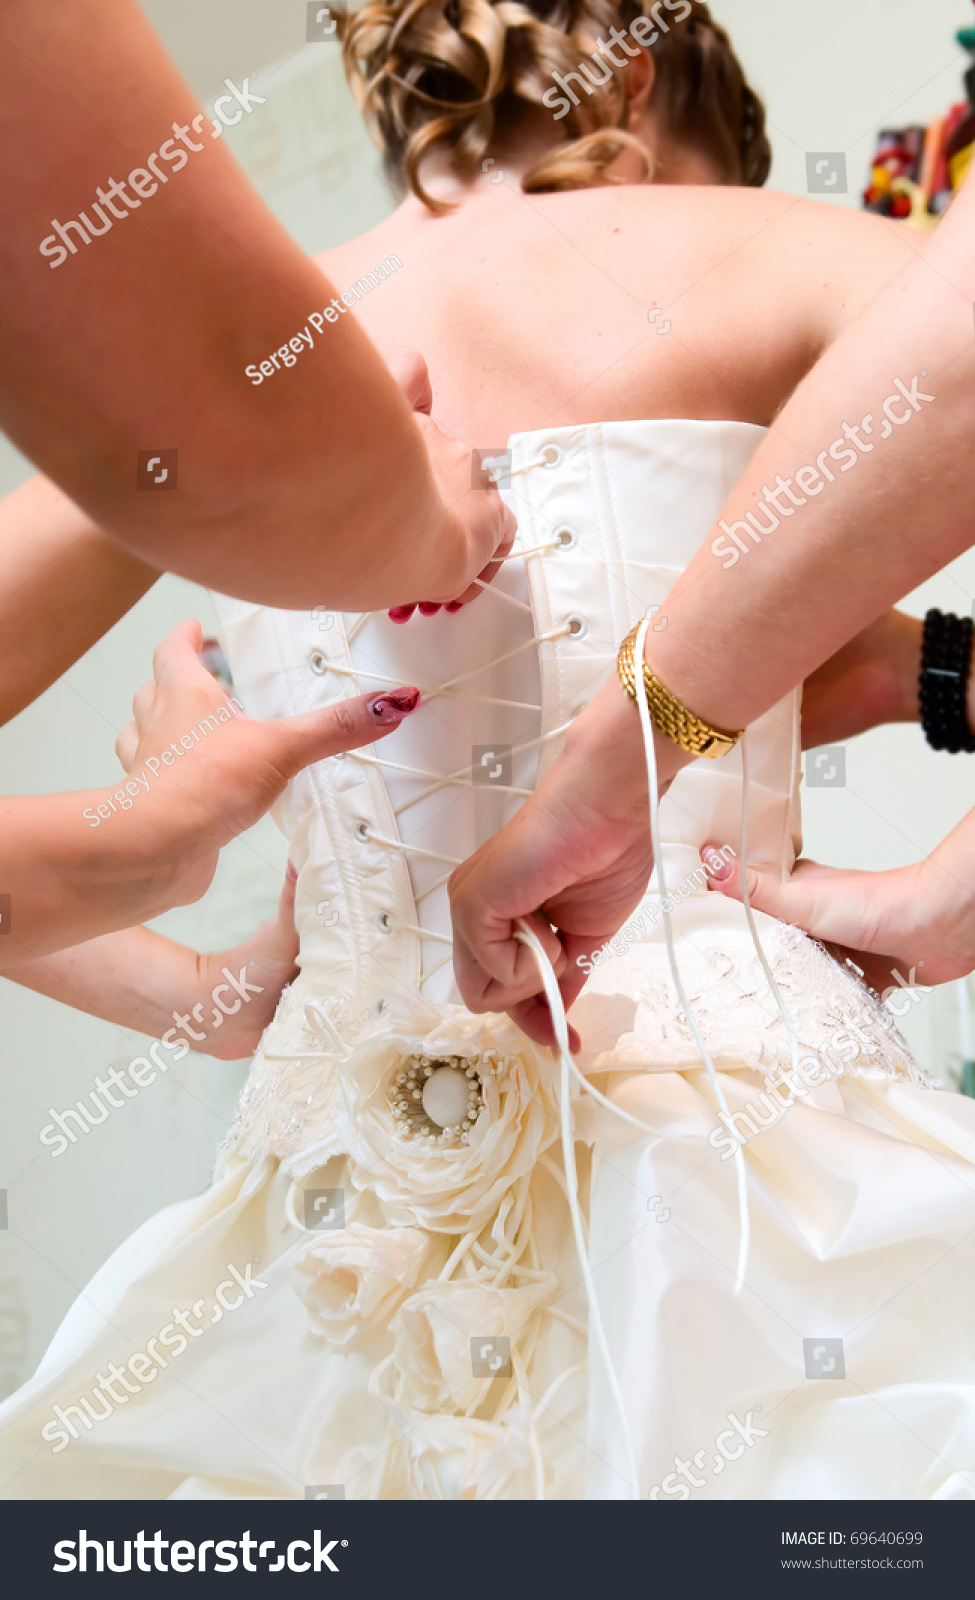 Friends helping each other pictures of the dress